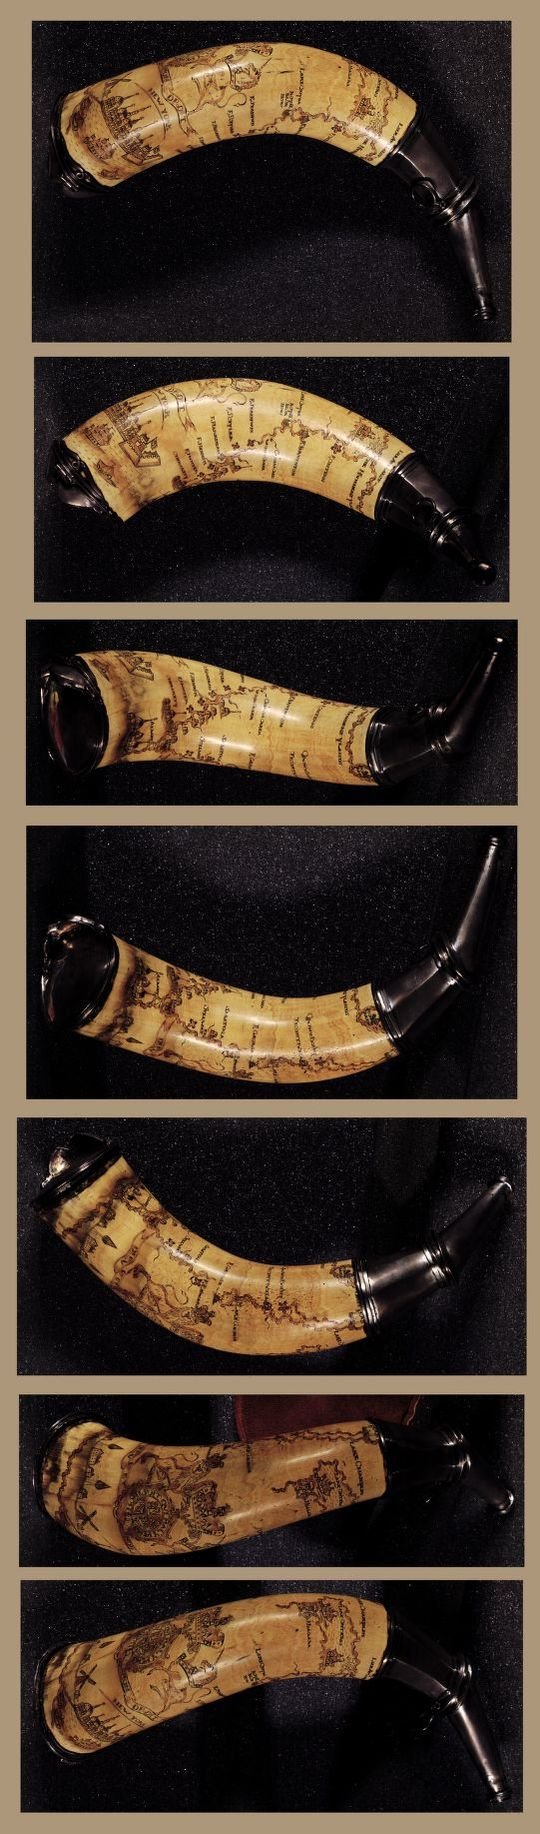 1760 - Powder horn with hand-drawn map of the Hudson River above Albany